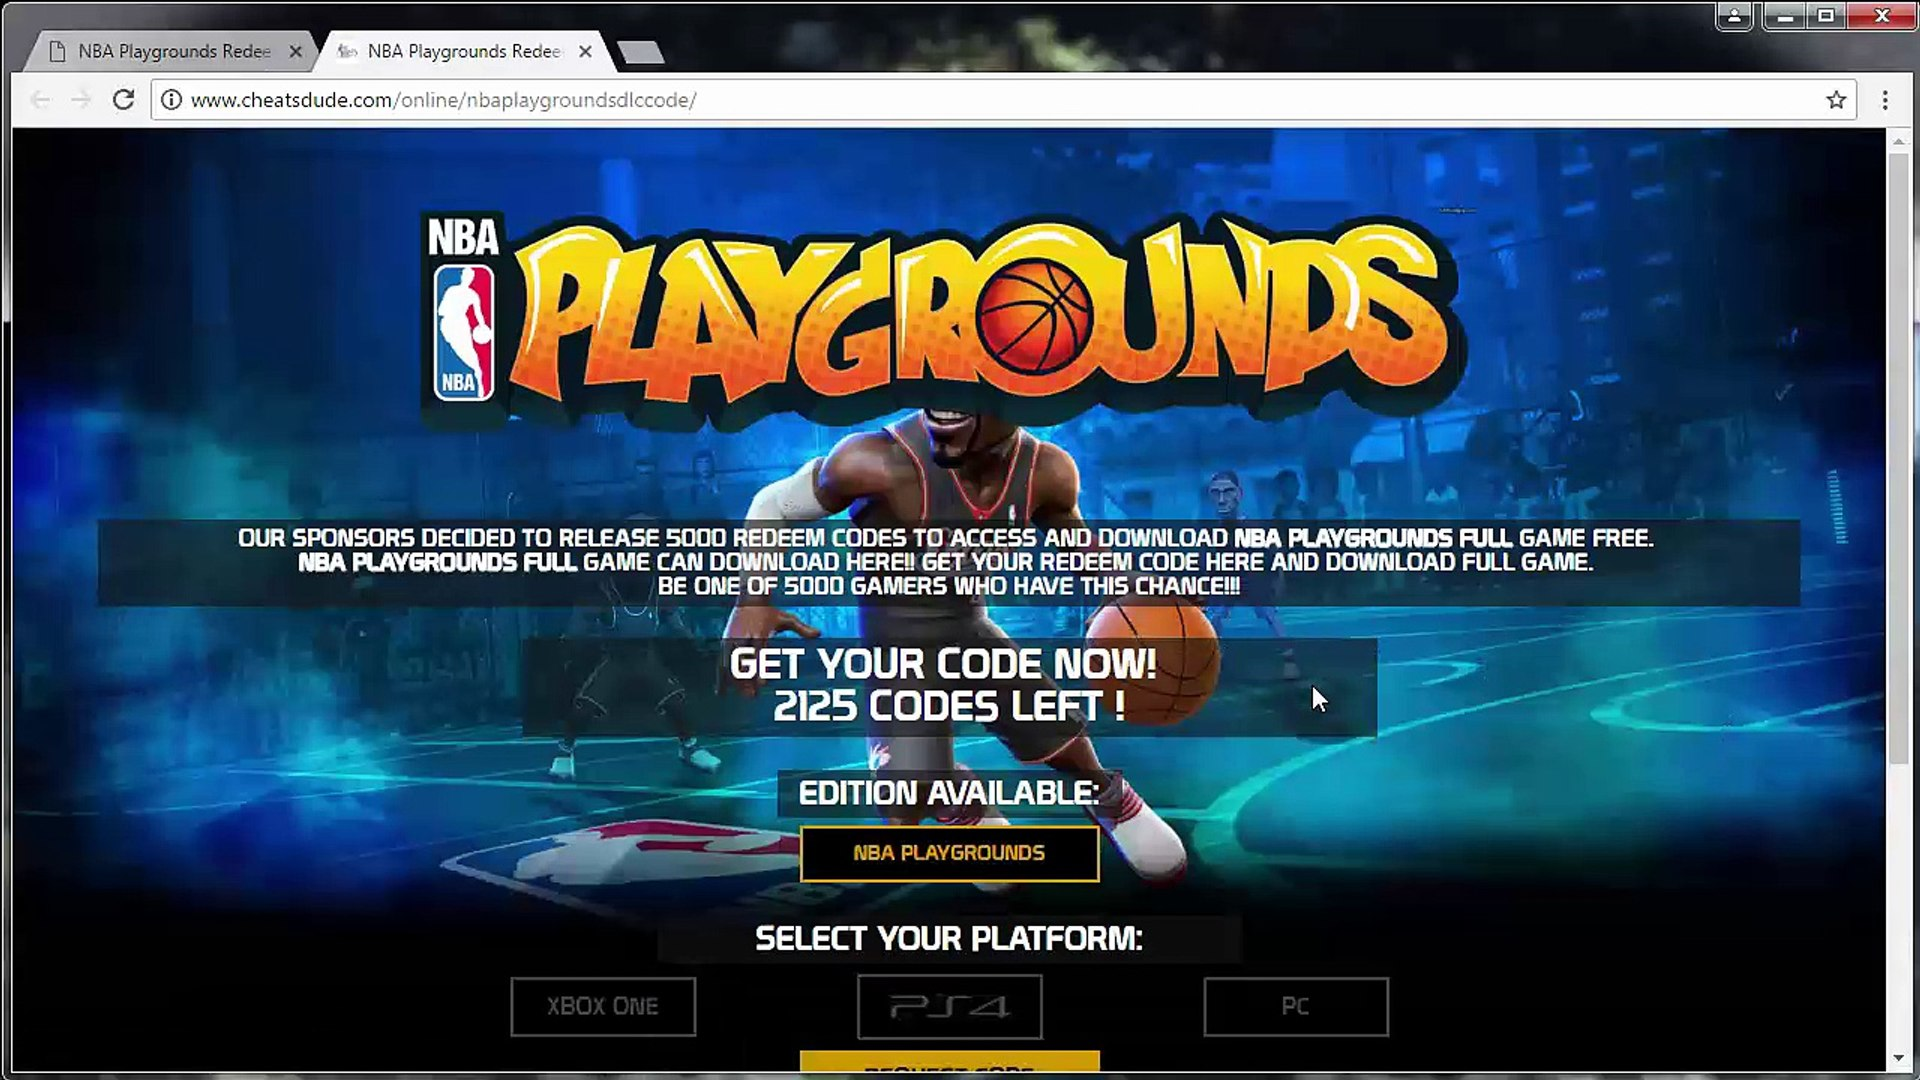 NBA Playgrounds Redeem Code Generator - Xbox One, PS4 and PC